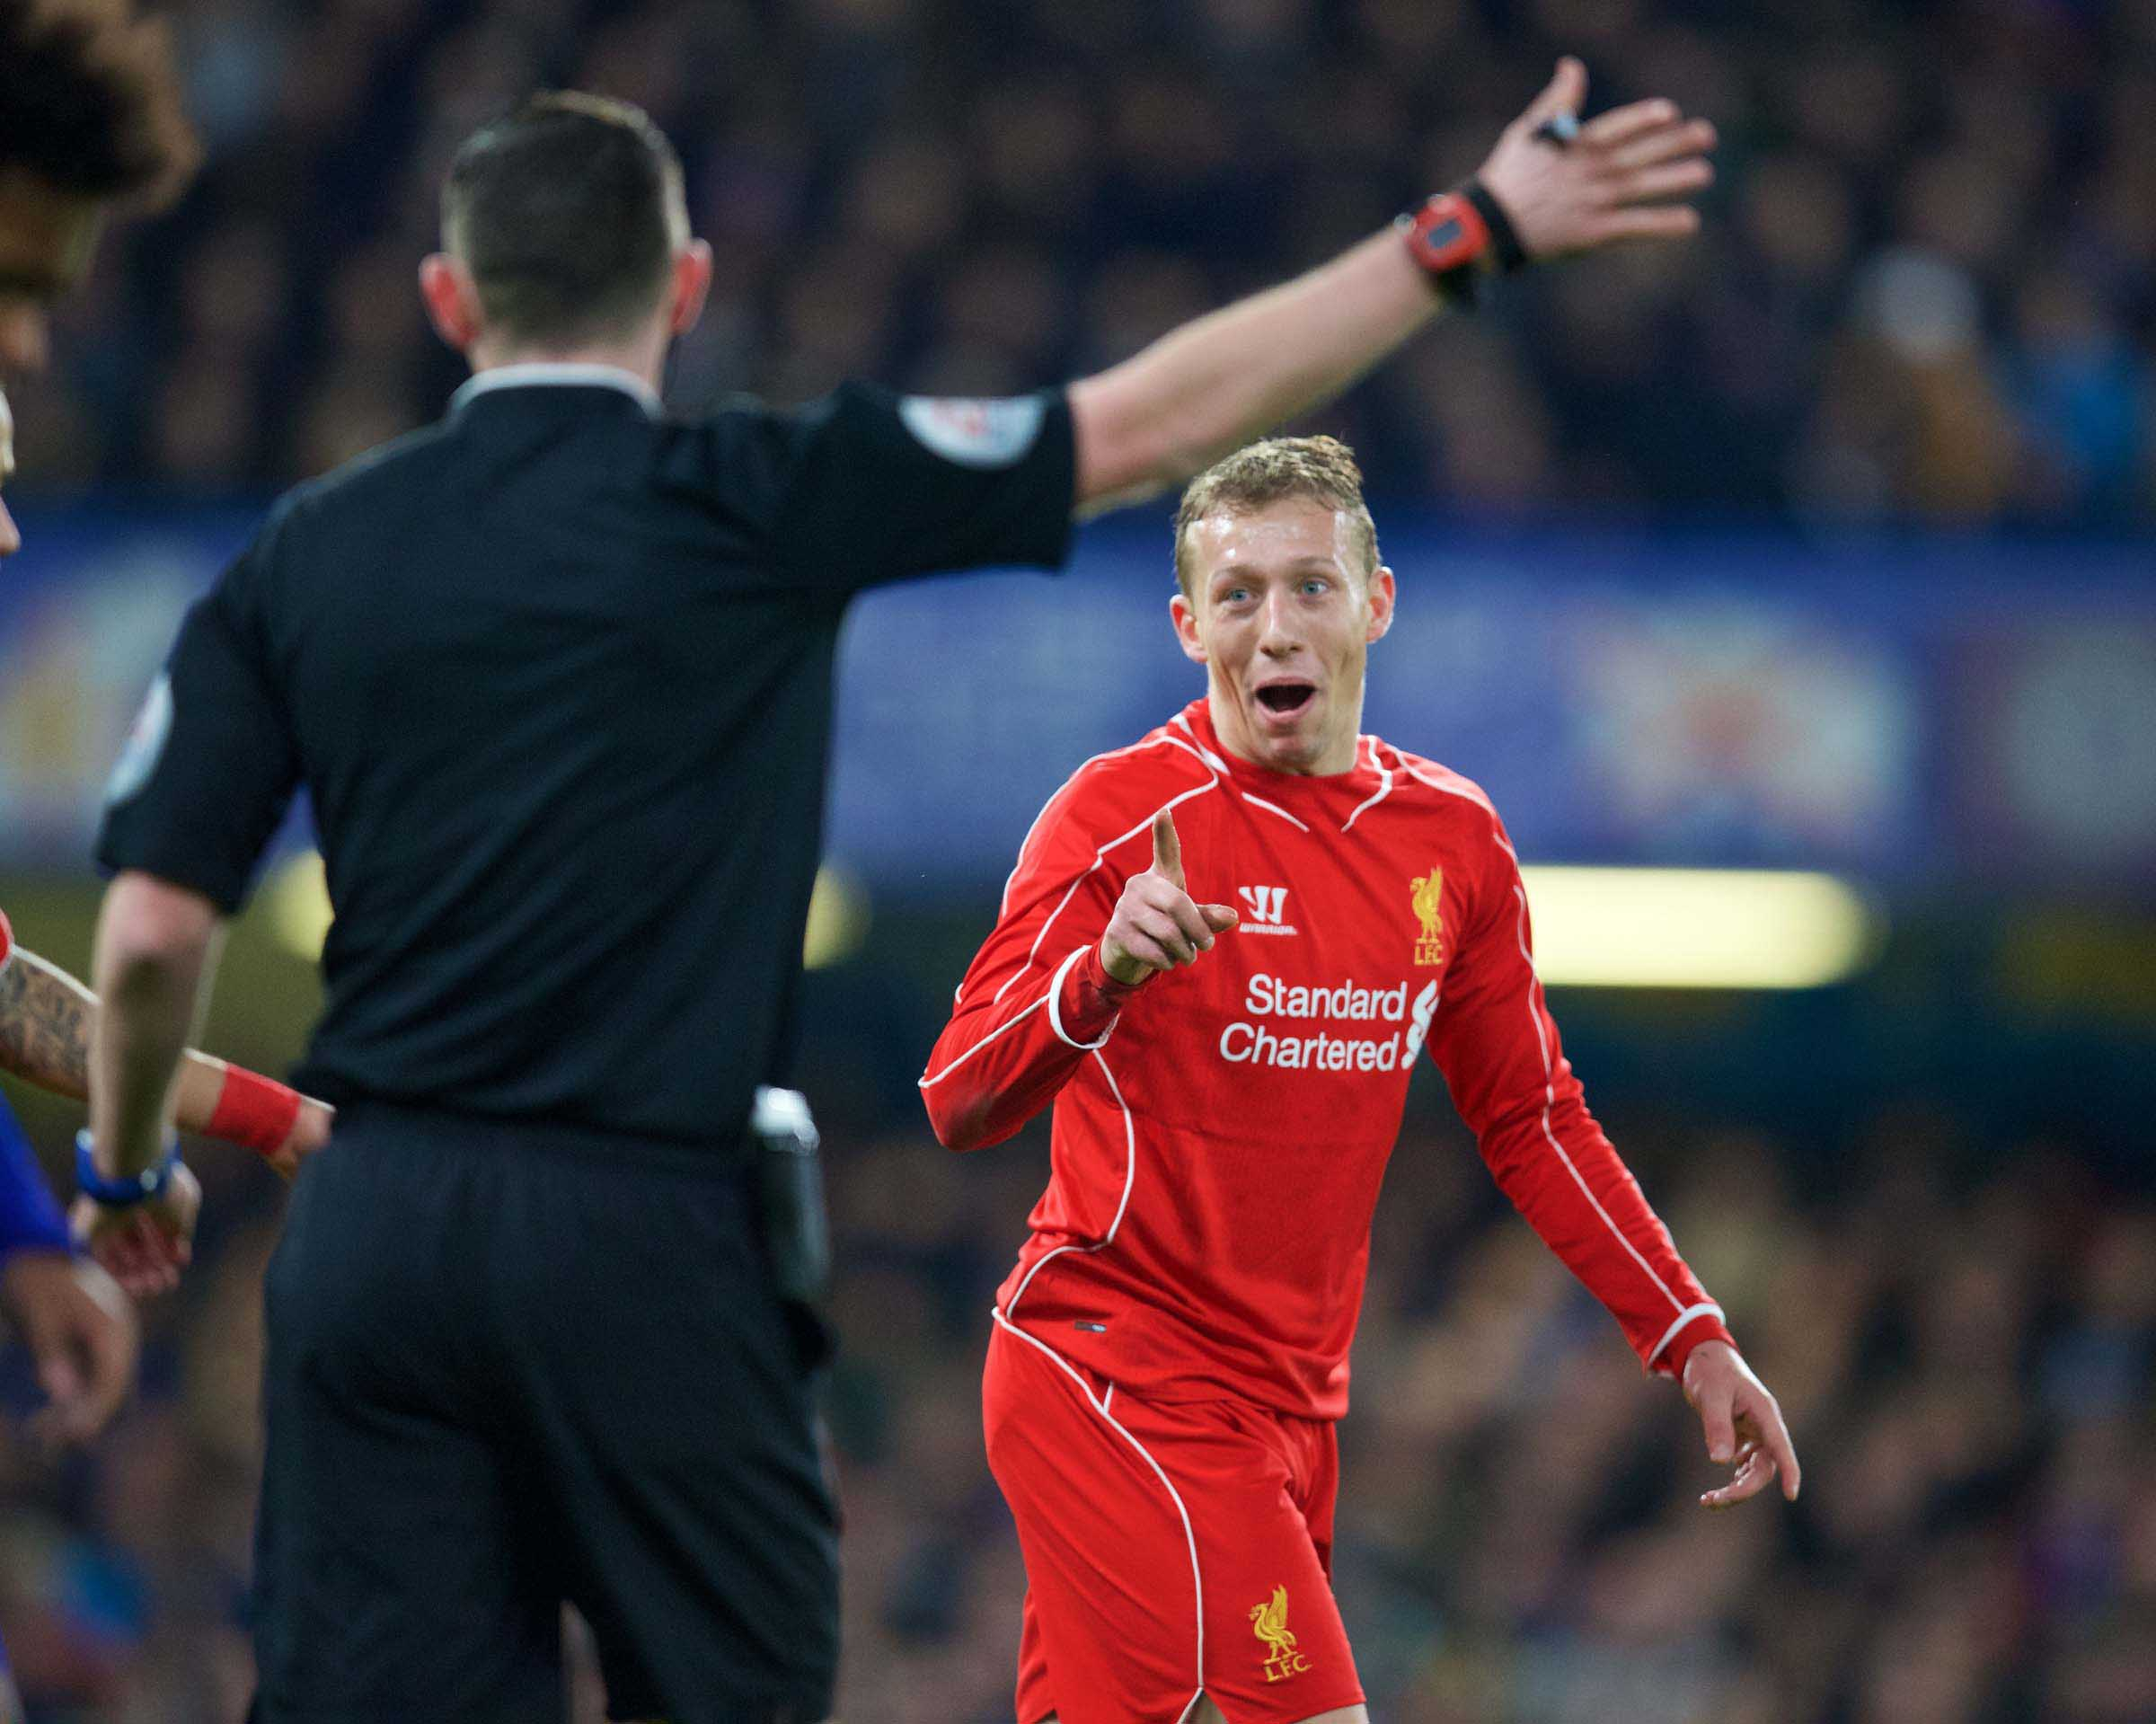 LUCAS LEIVA: AND THAT IS WHY WE LIKE HIM, WE LIKE HIM, WE LIKE HIM…